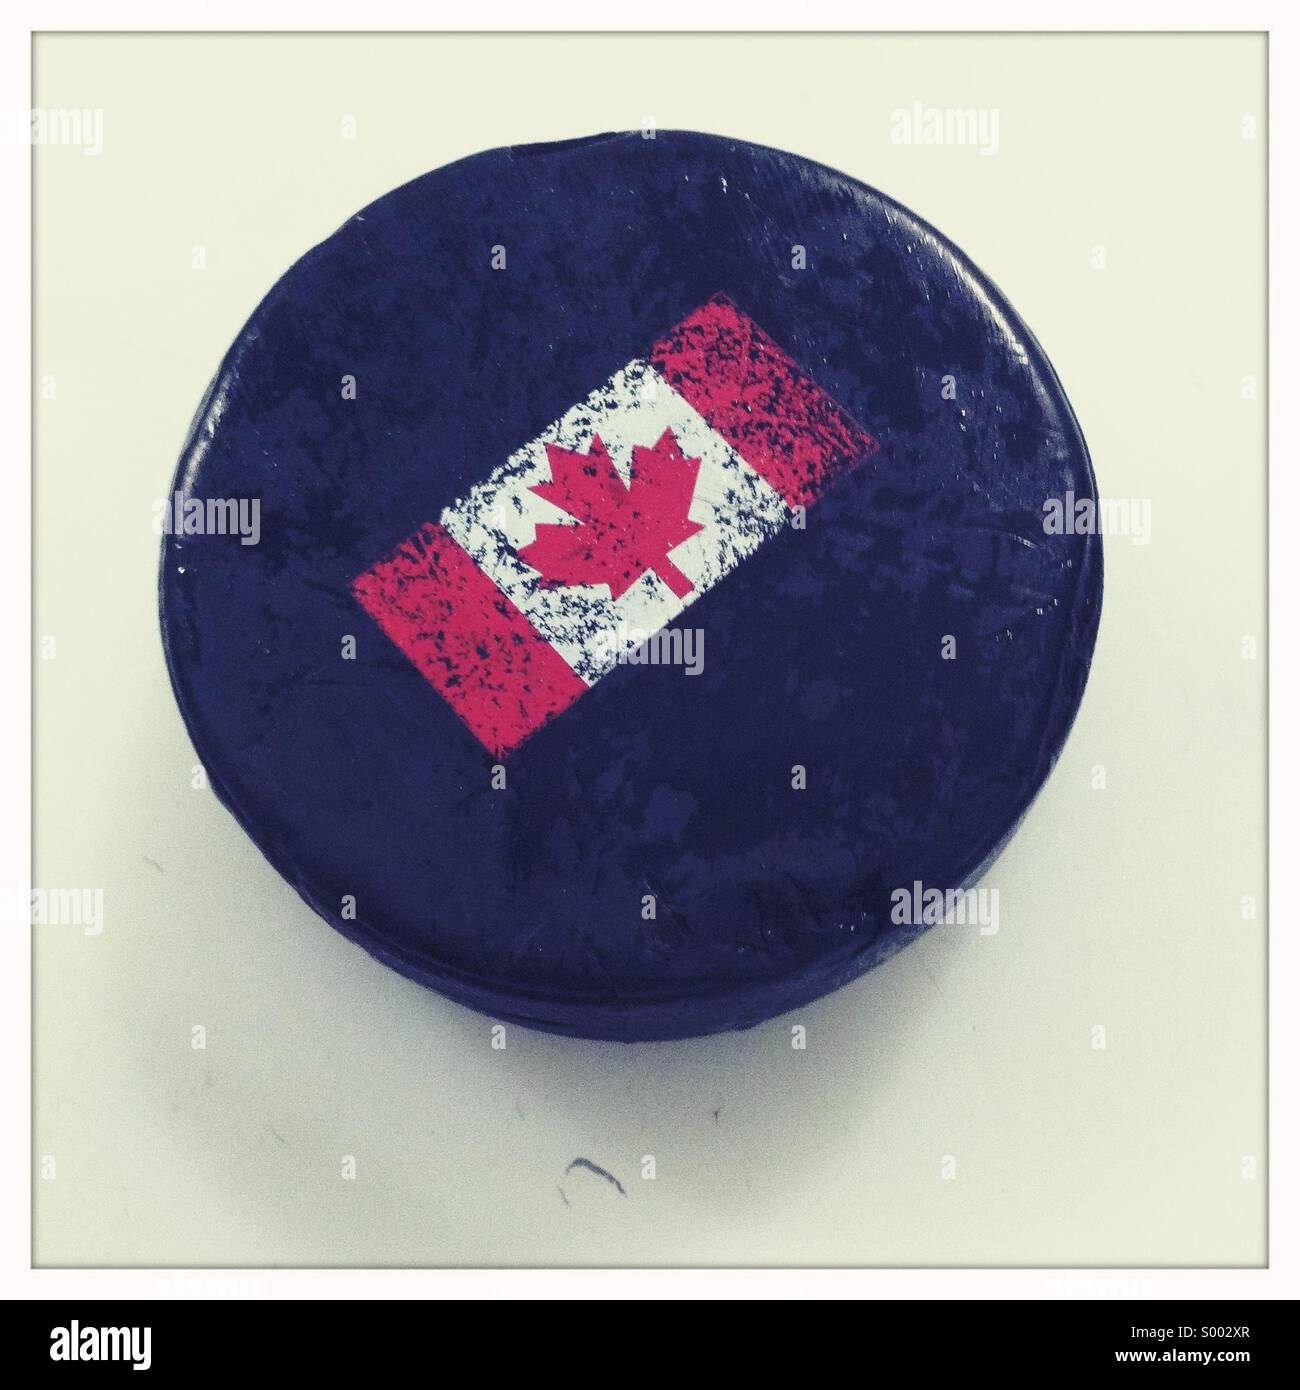 A black ice hockey puck with a Canadian flag painted on it. - Stock Image